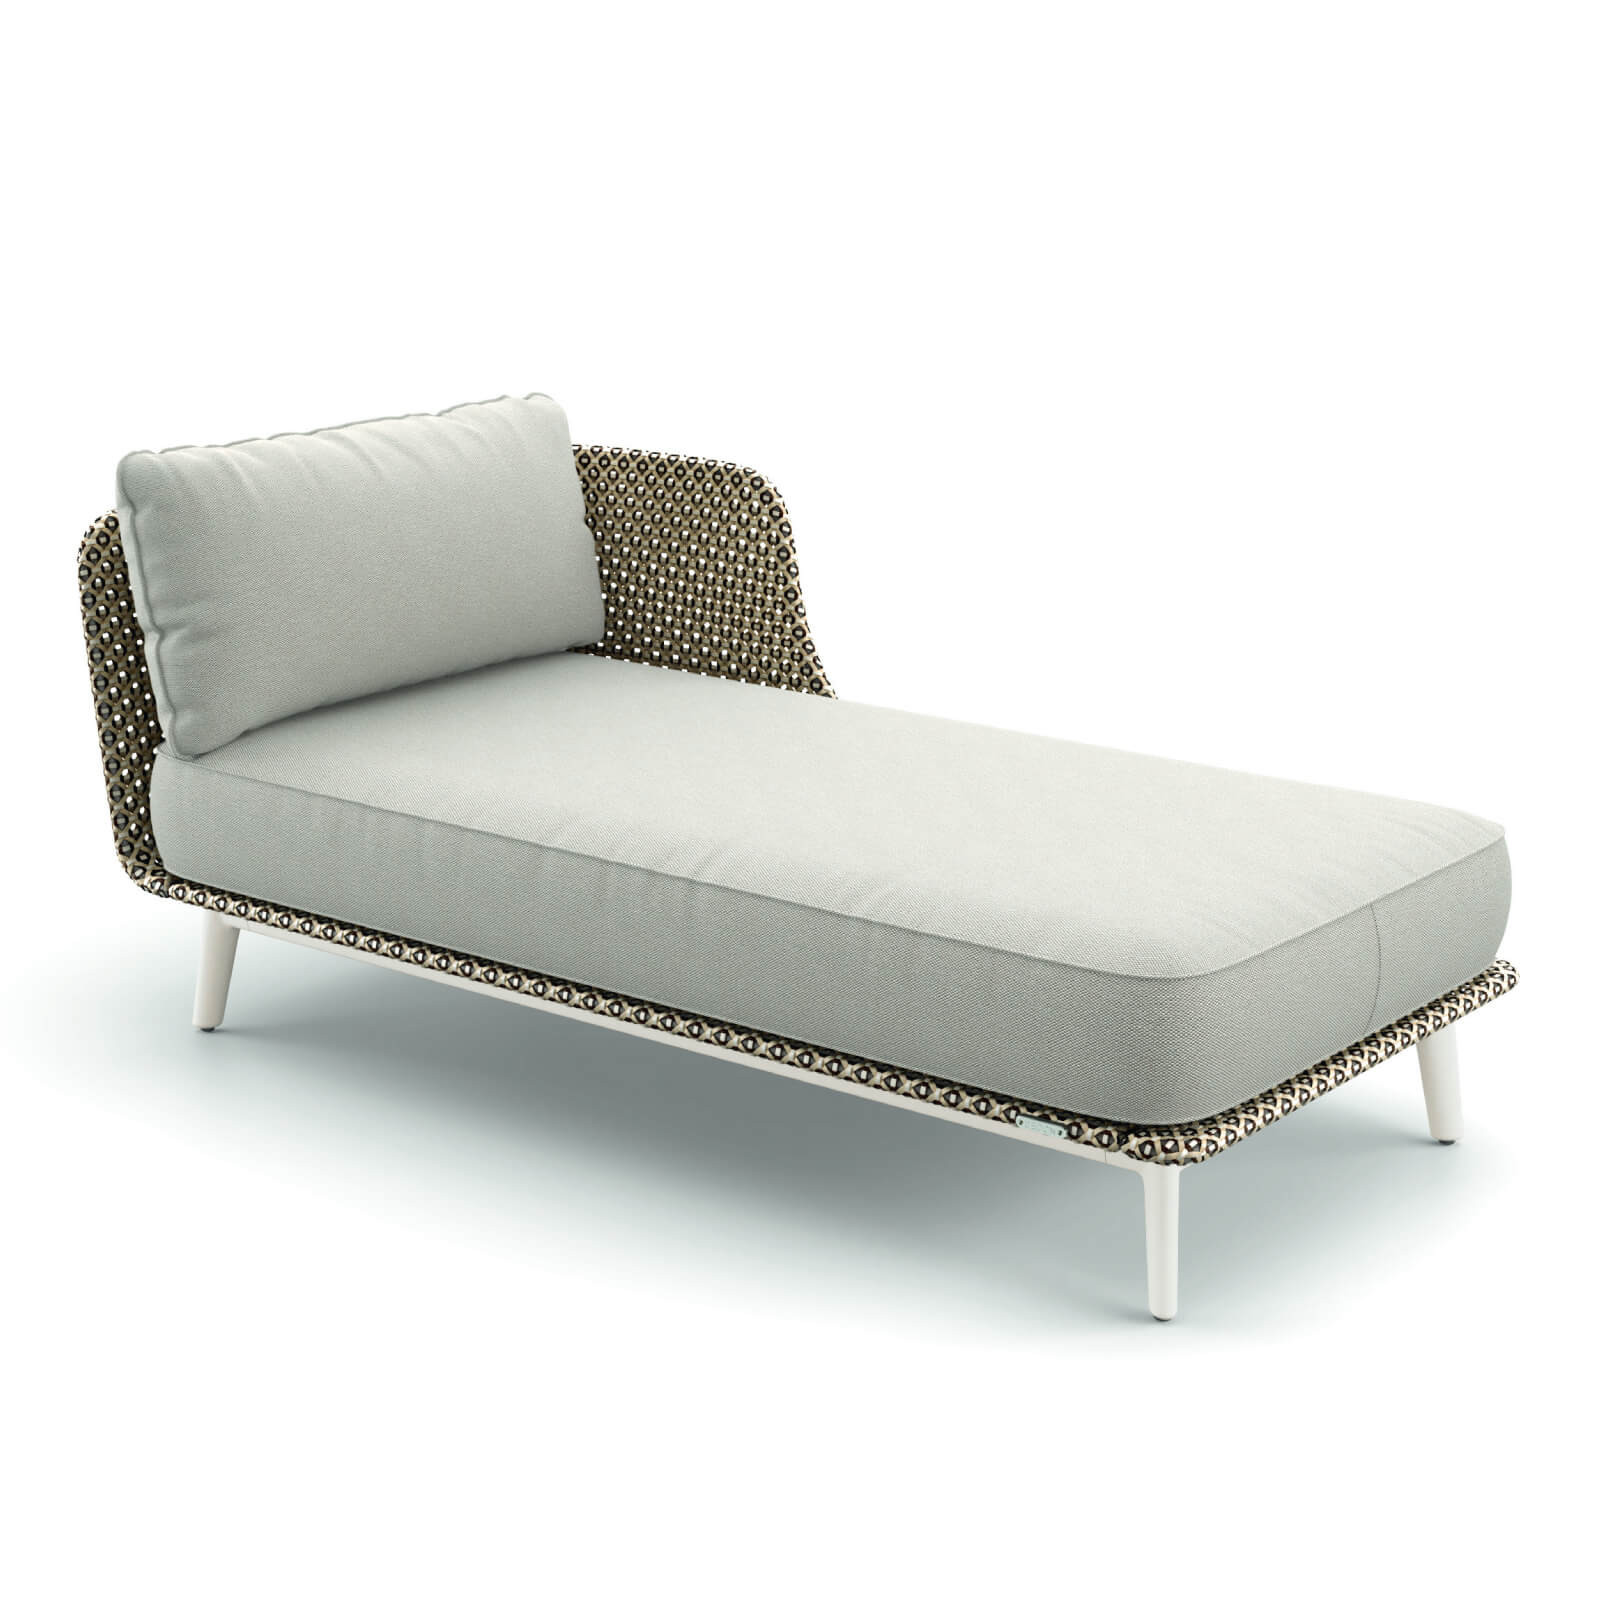 DEDON MBARQ Daybed links 304 lipari mit 115 pepper